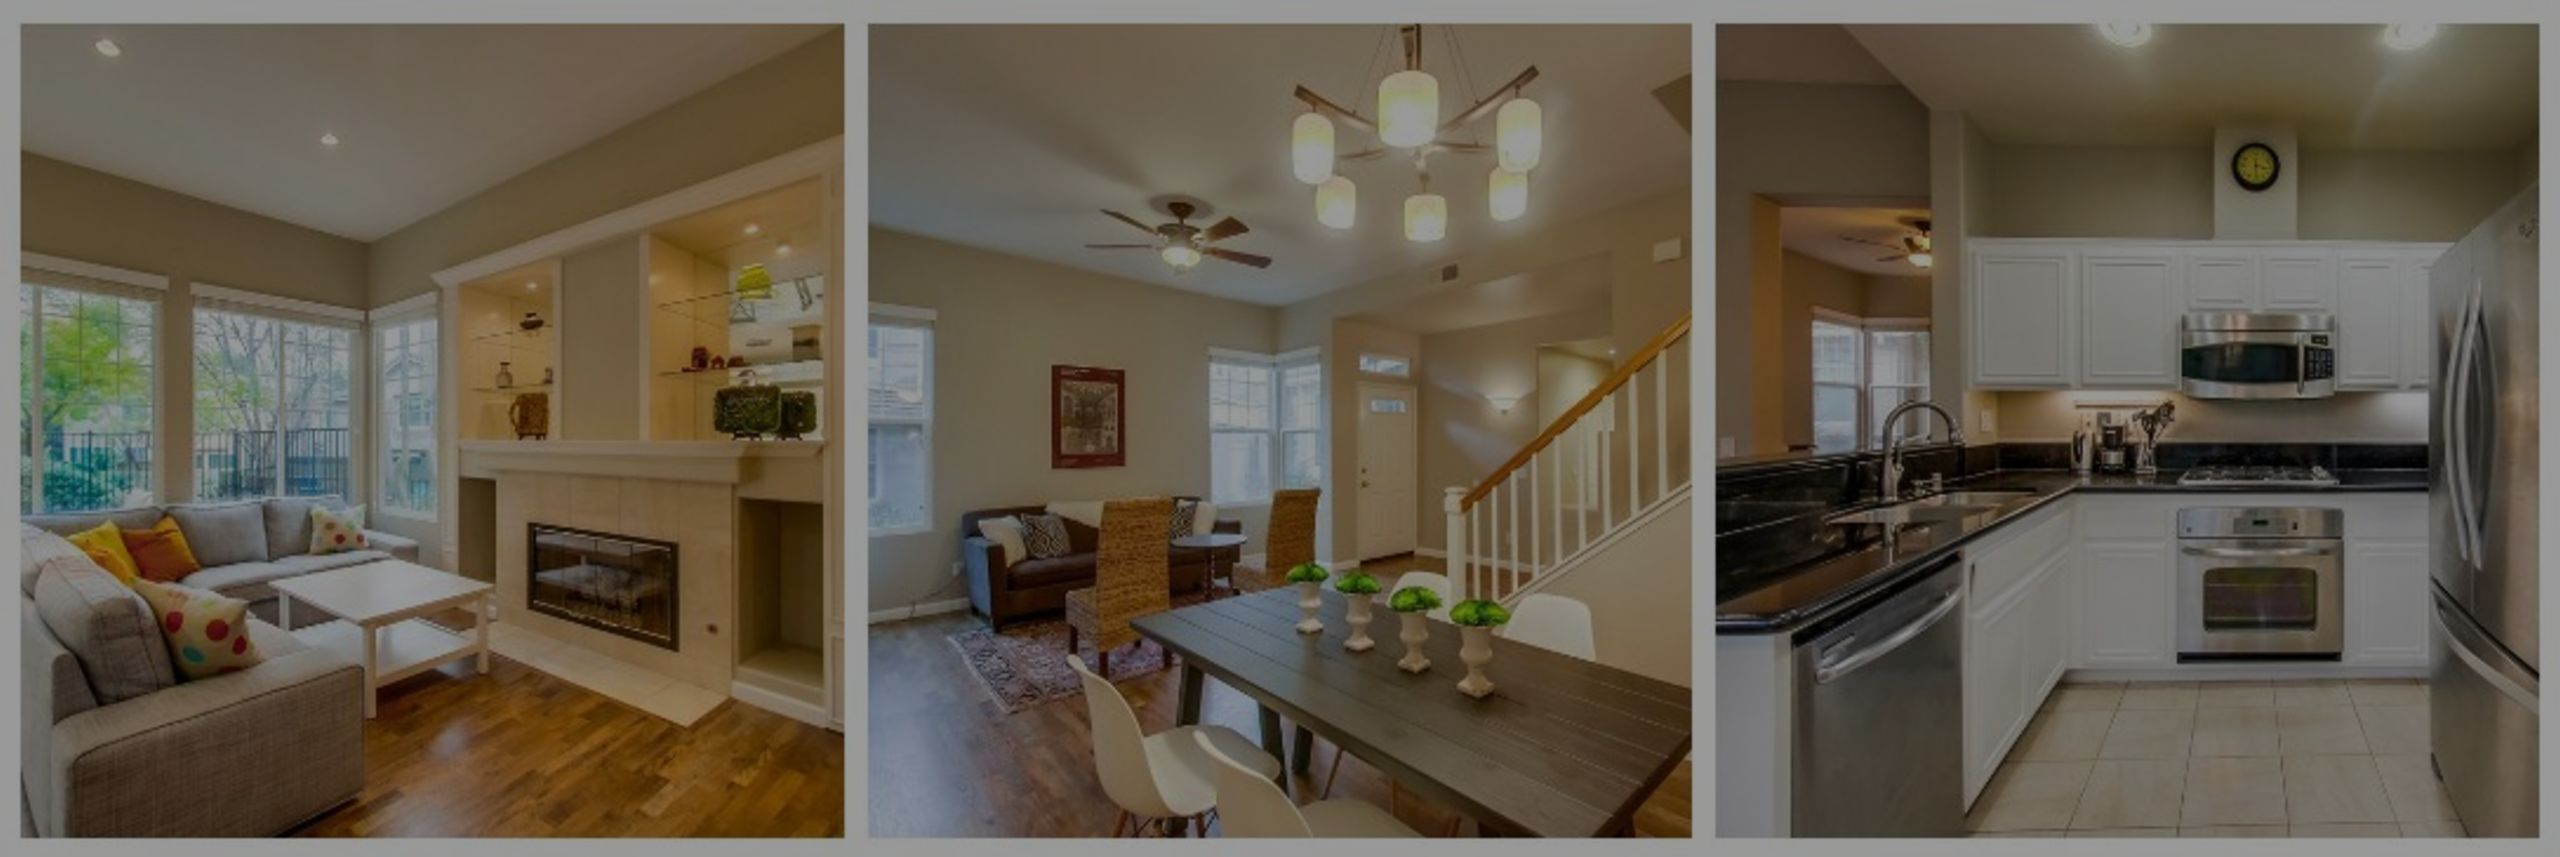 12025 WORLD TRADE DRIVE, #4 | SOLD